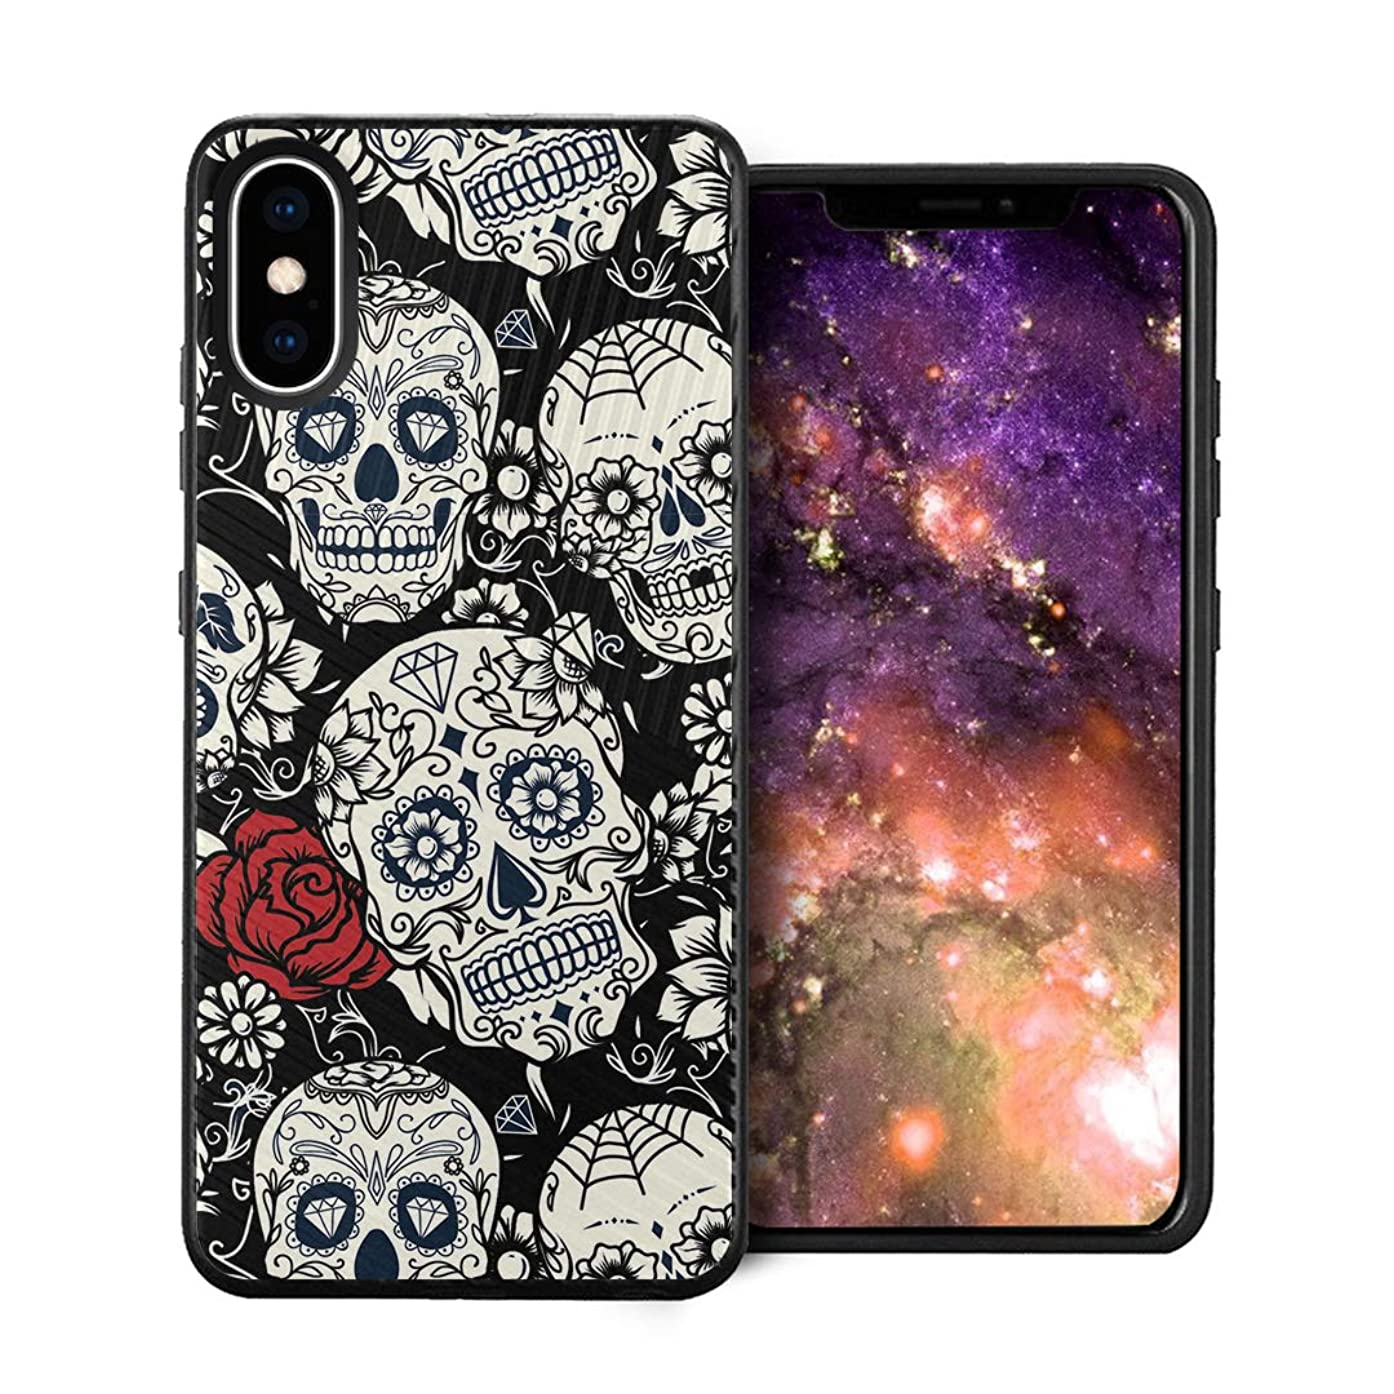 Capsule Case Compatible with iPhone Xs Max [Embossed Diagonal Lines Hybrid Dual Layer Slim Armor Black Case] for iPhone Xs Max - (Black White Sugar Skull)